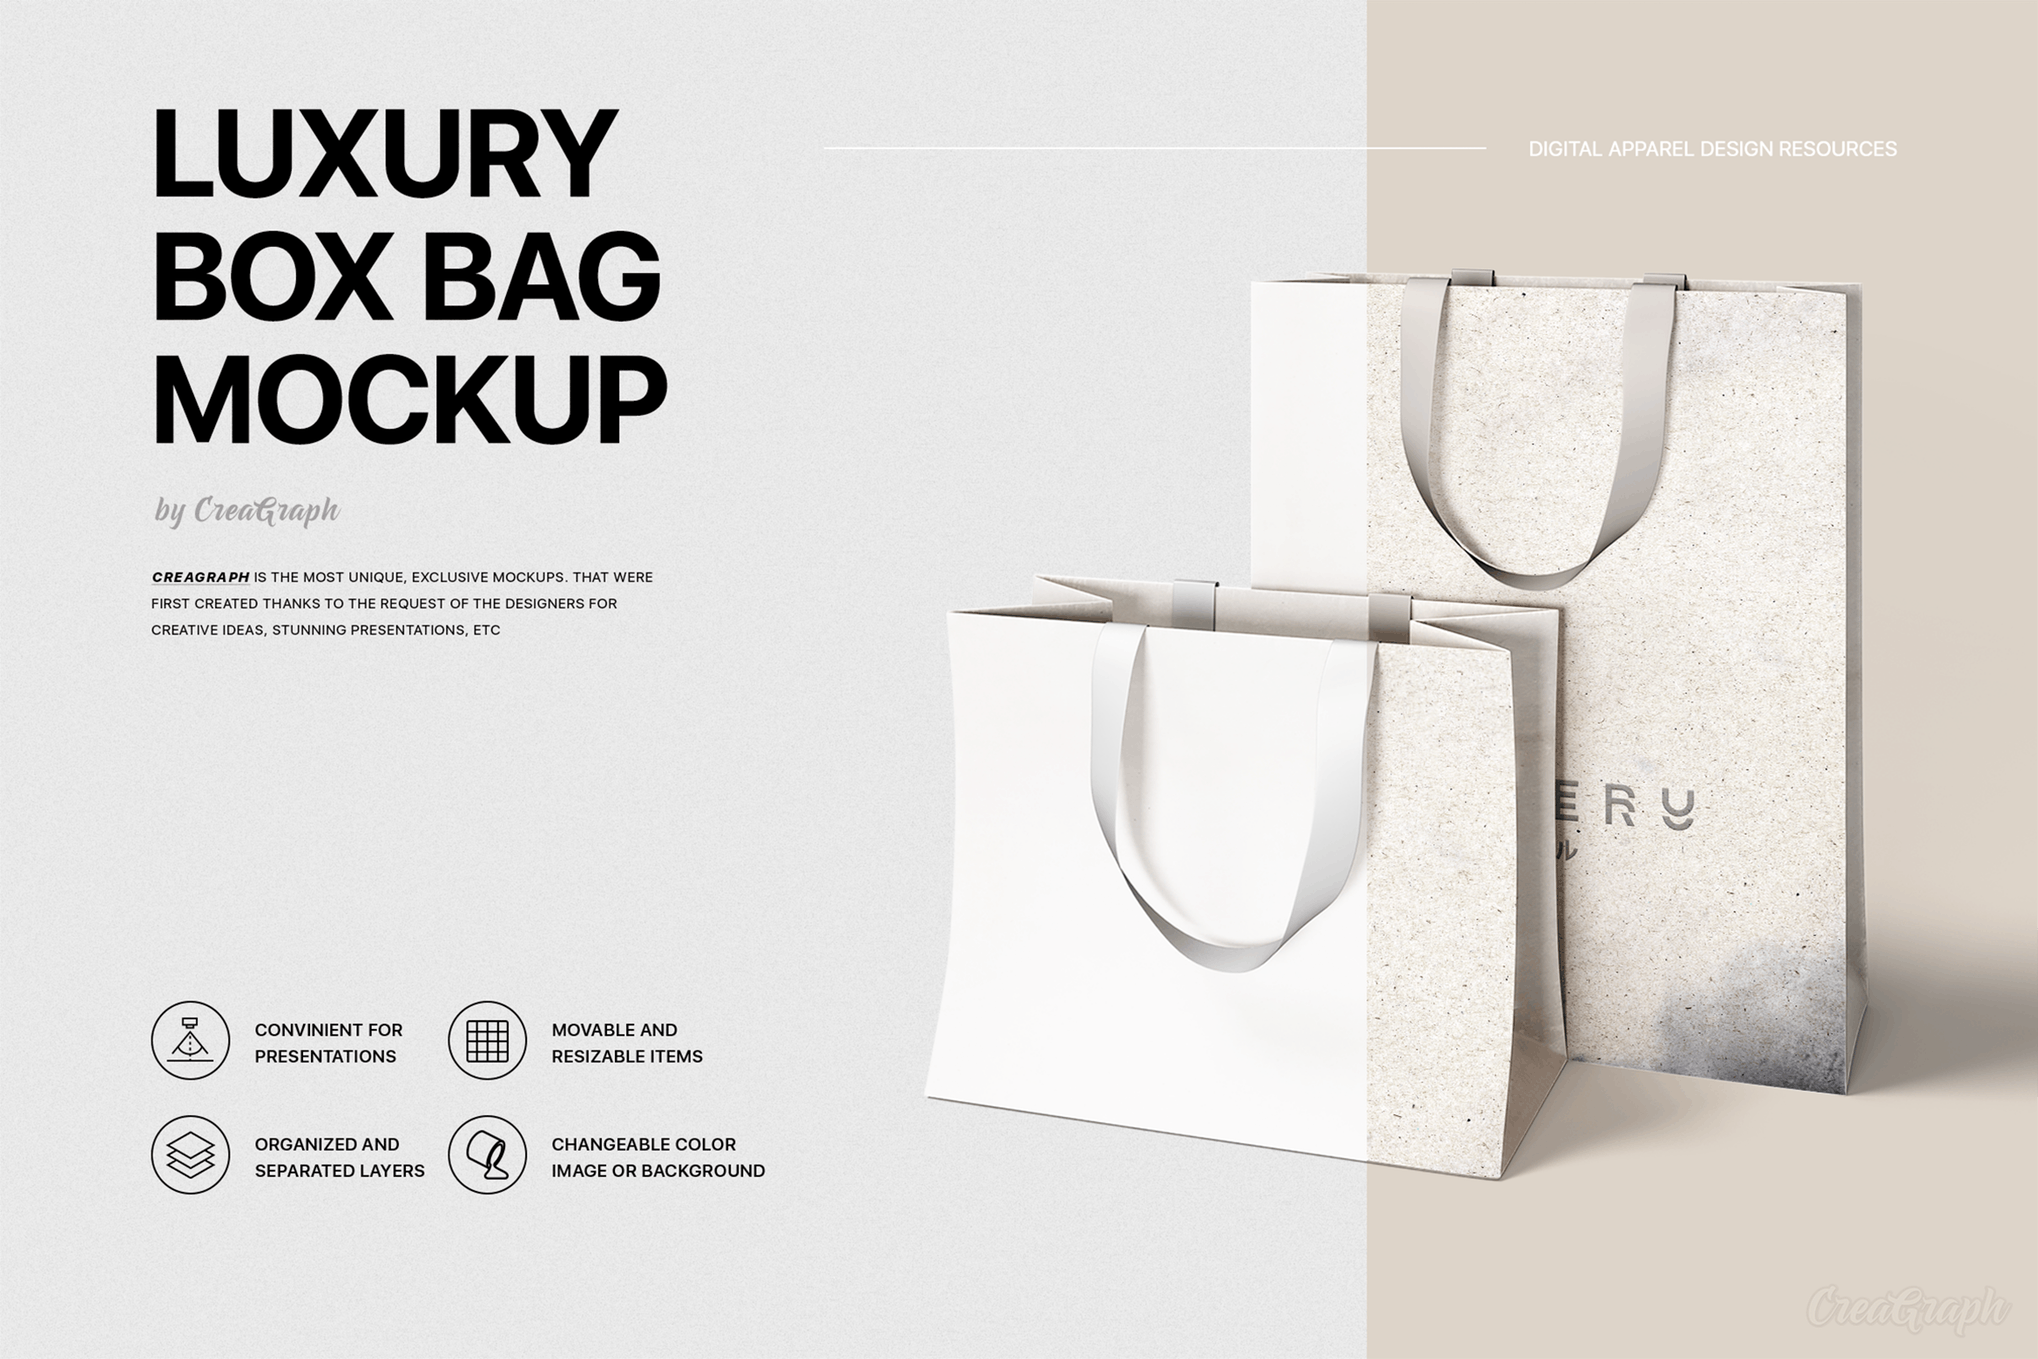 Download Cover Image For Luxury Box Bag Mockup Bag Mockup Luxury Boxes Box Bag